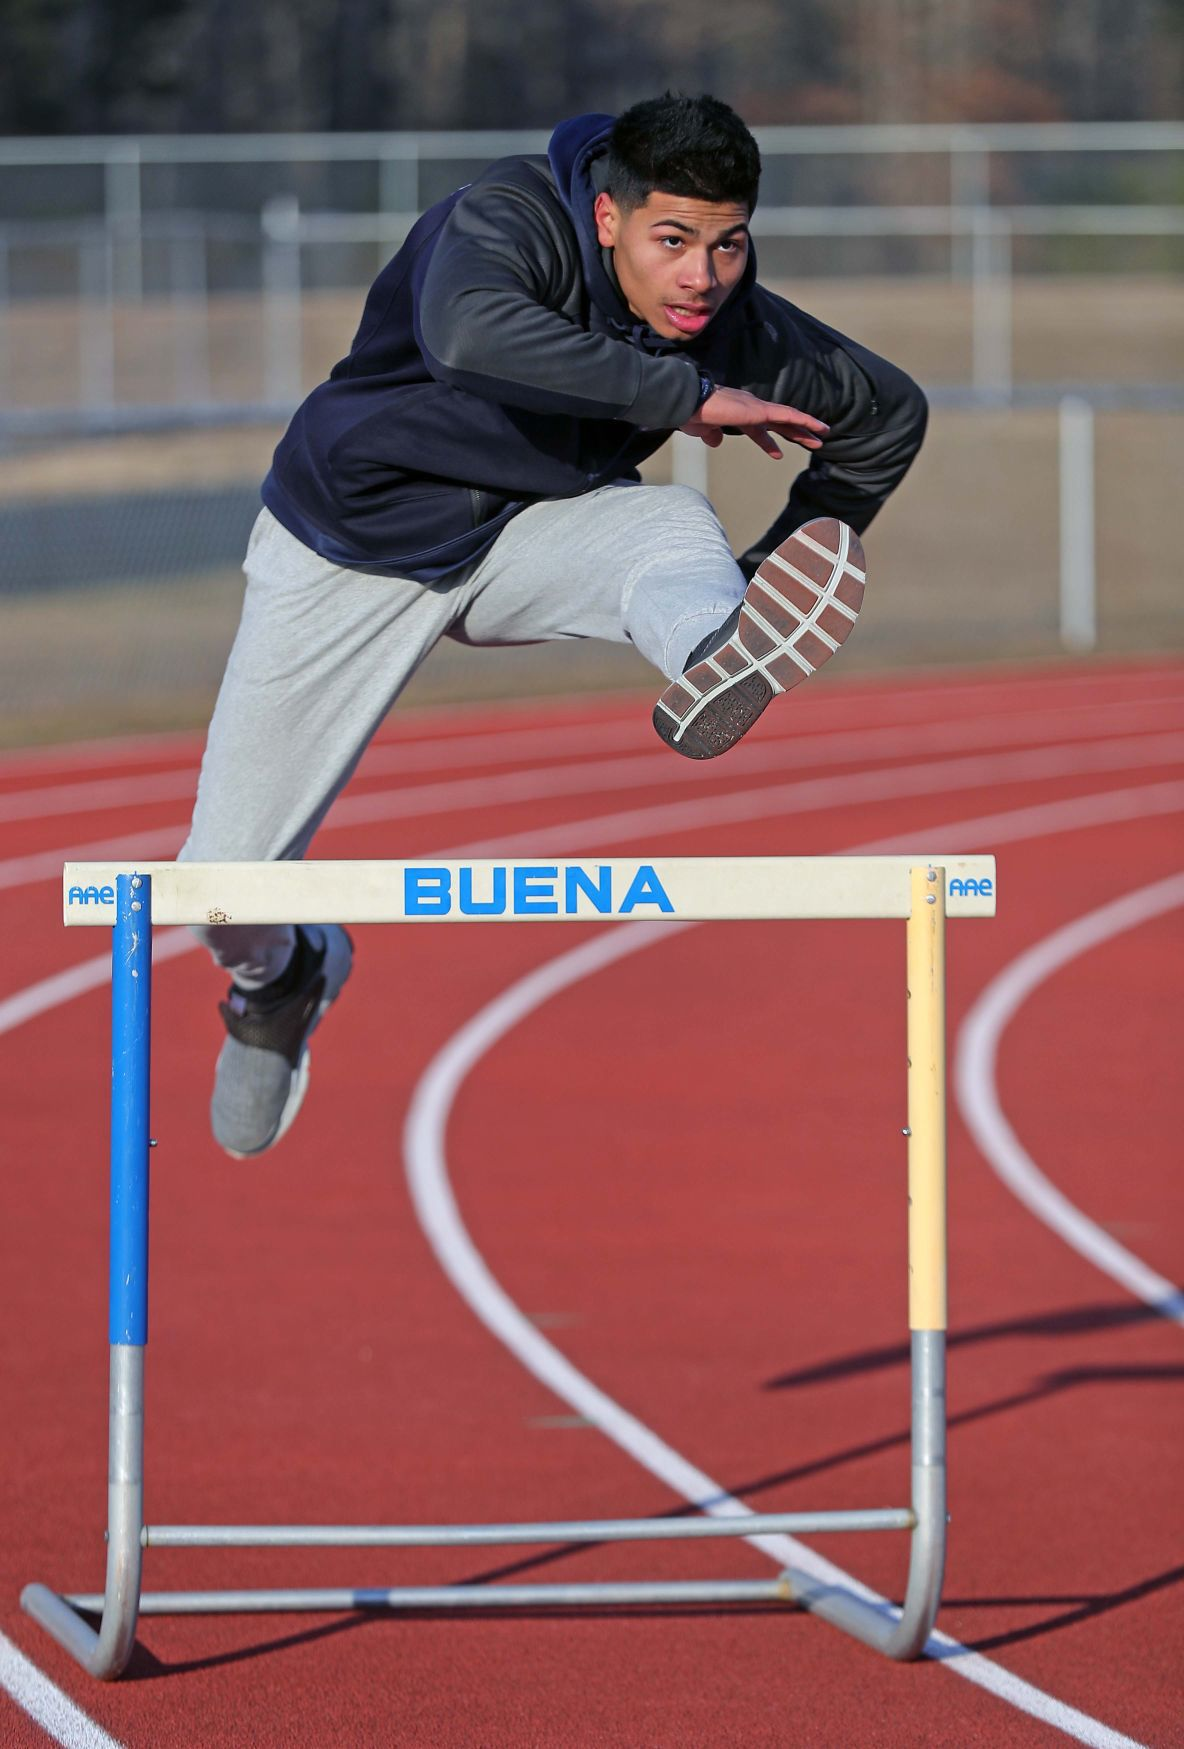 St. Augustine's track standout Sincere Rhea